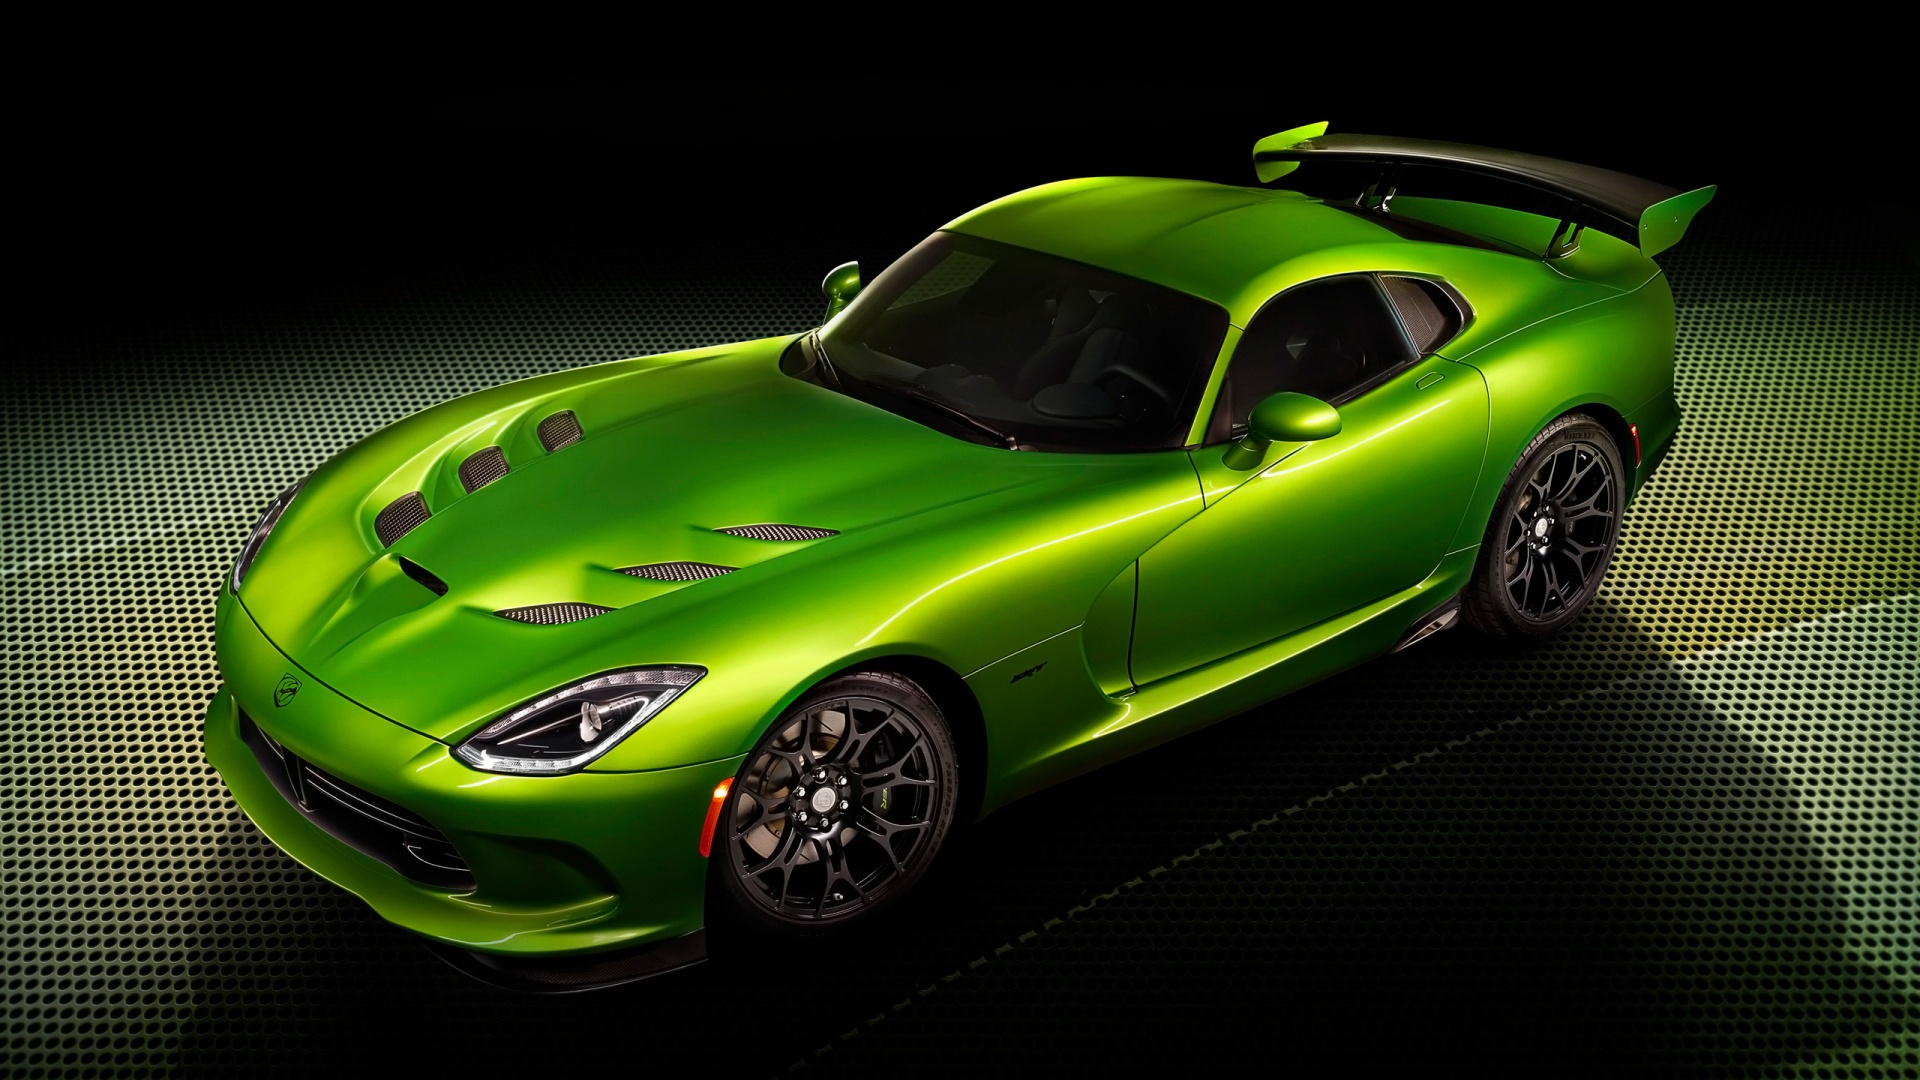 2014 SRT Viper Wallpapers HD Wallpapers 1920x1080